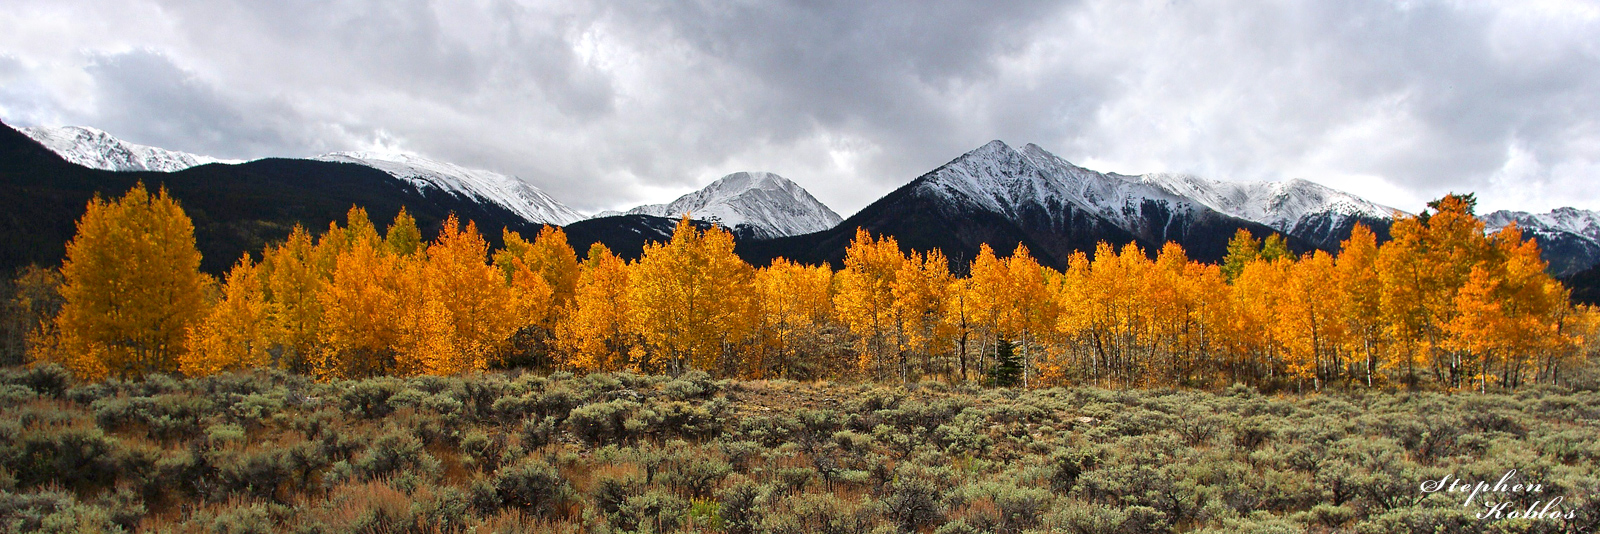 Golden Aspens  Limited Edition of 250